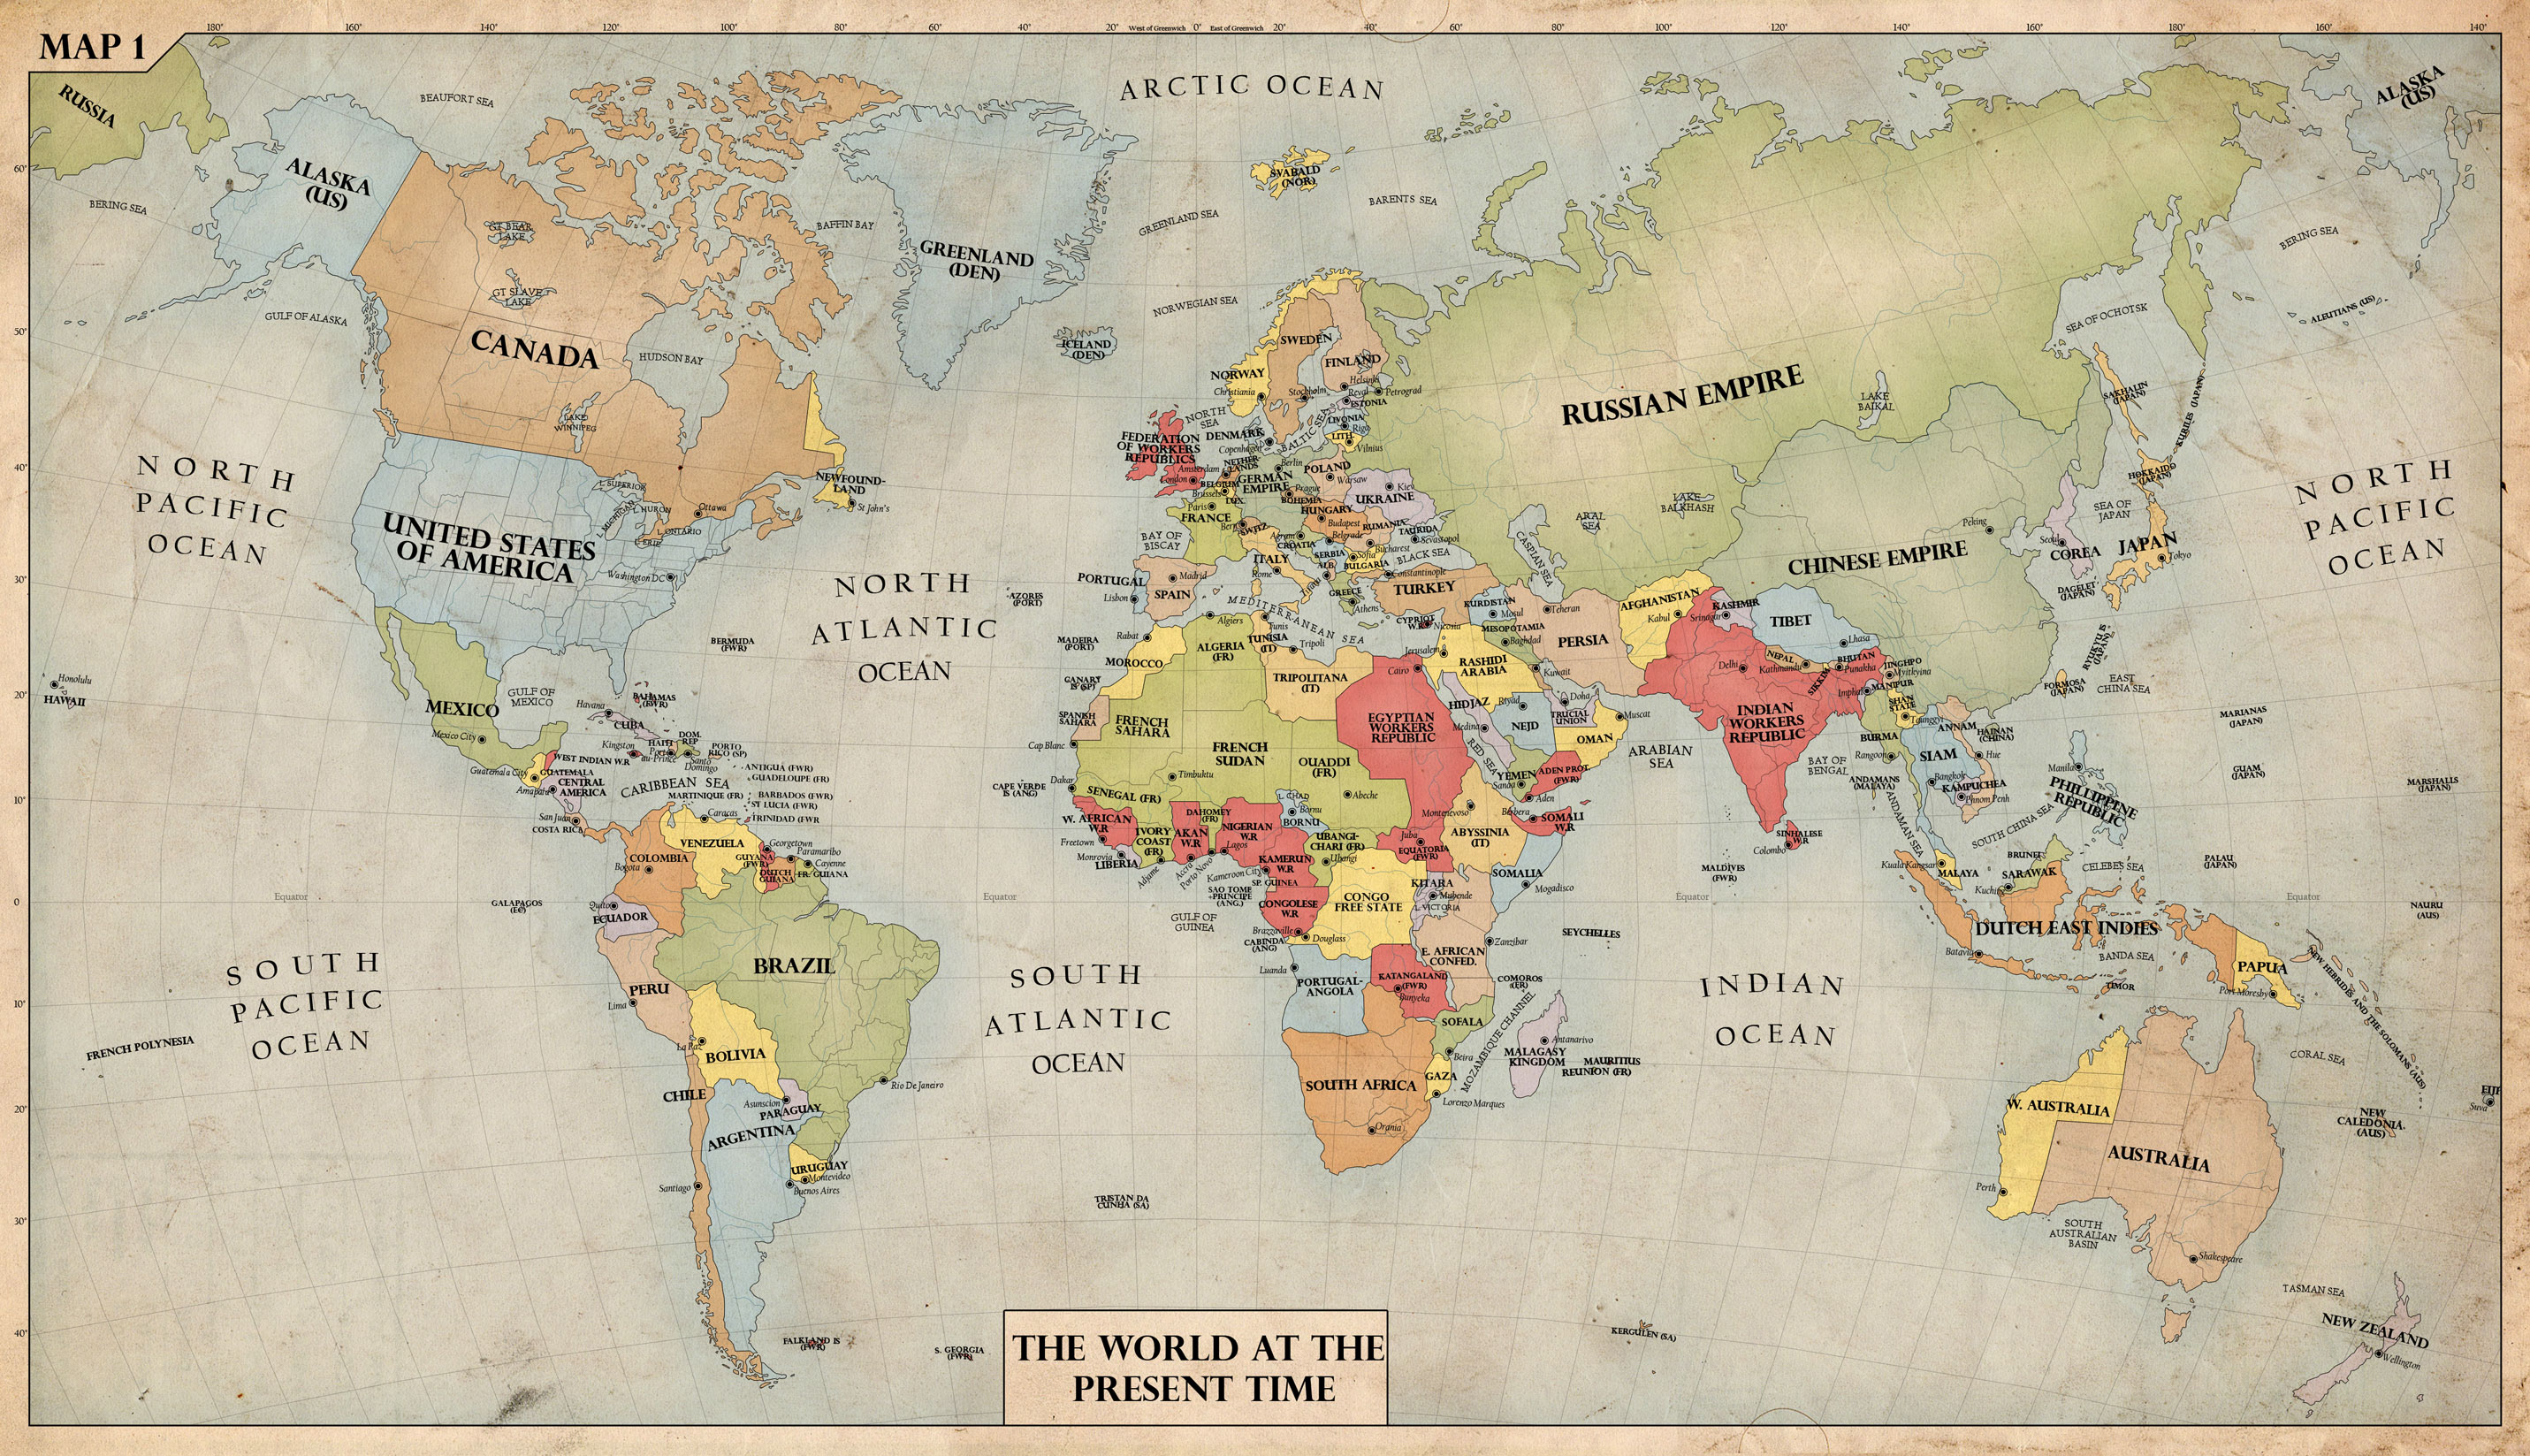 The World, 1940 by edthomasten